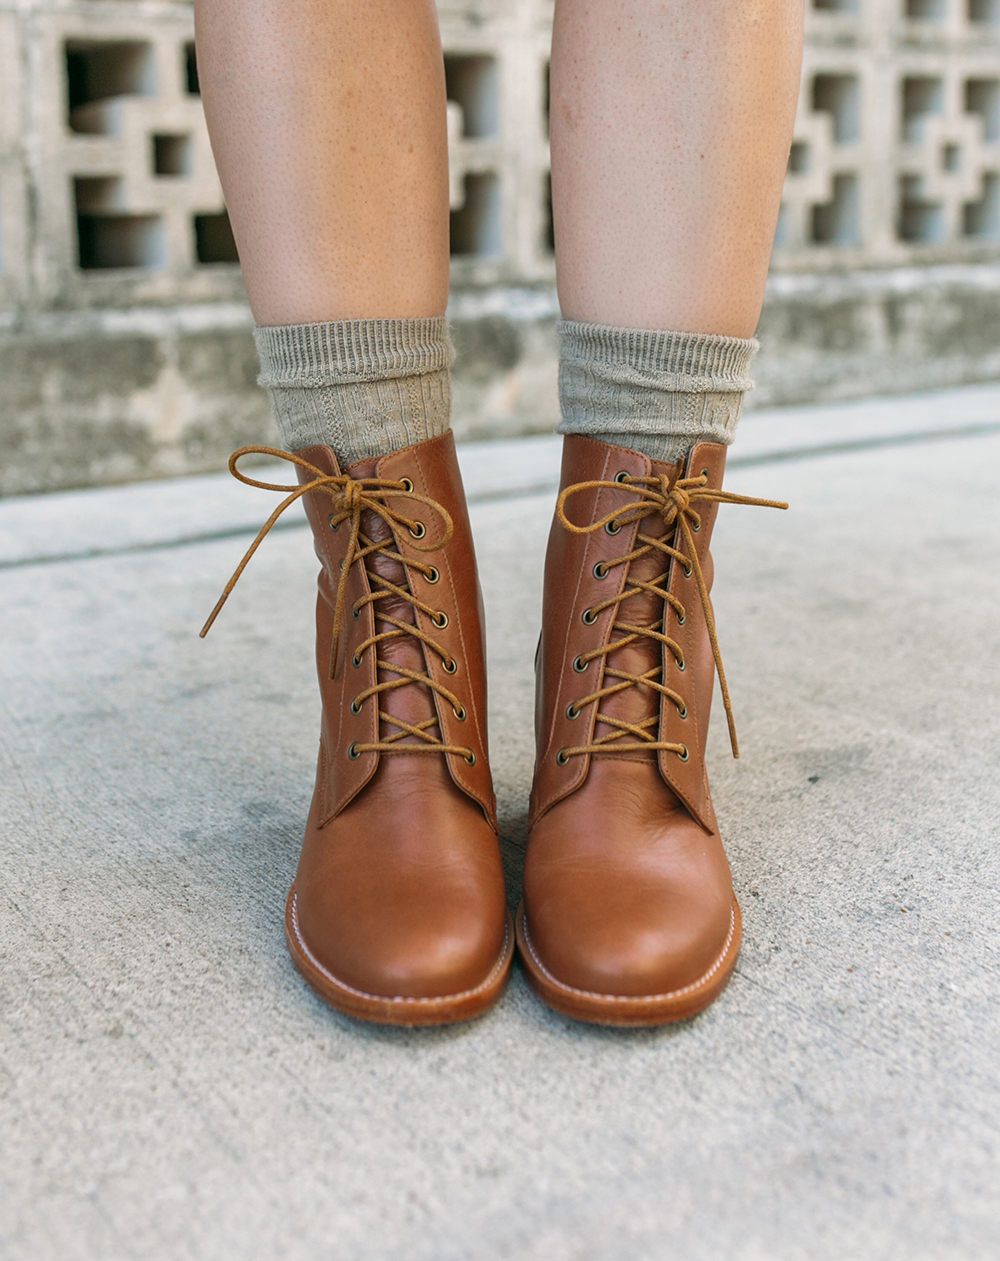 livvyland-blog-olivia-watson-austin-texas-lifestyle-fashion-blogger-fortress-of-inca-alexandra-page-lace-up-booties-3